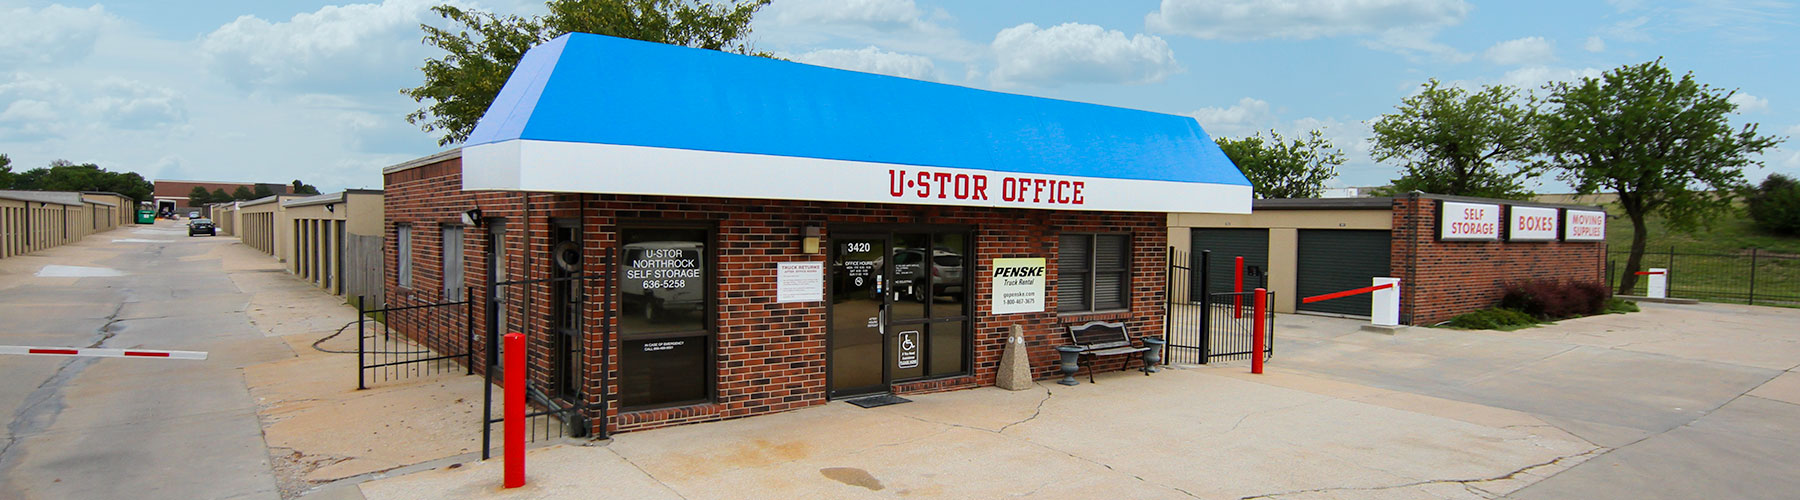 U-STOR Northrock is located at 3420 N. Rock Rd, Wichita, KS. Call 316-616-6876 for information.